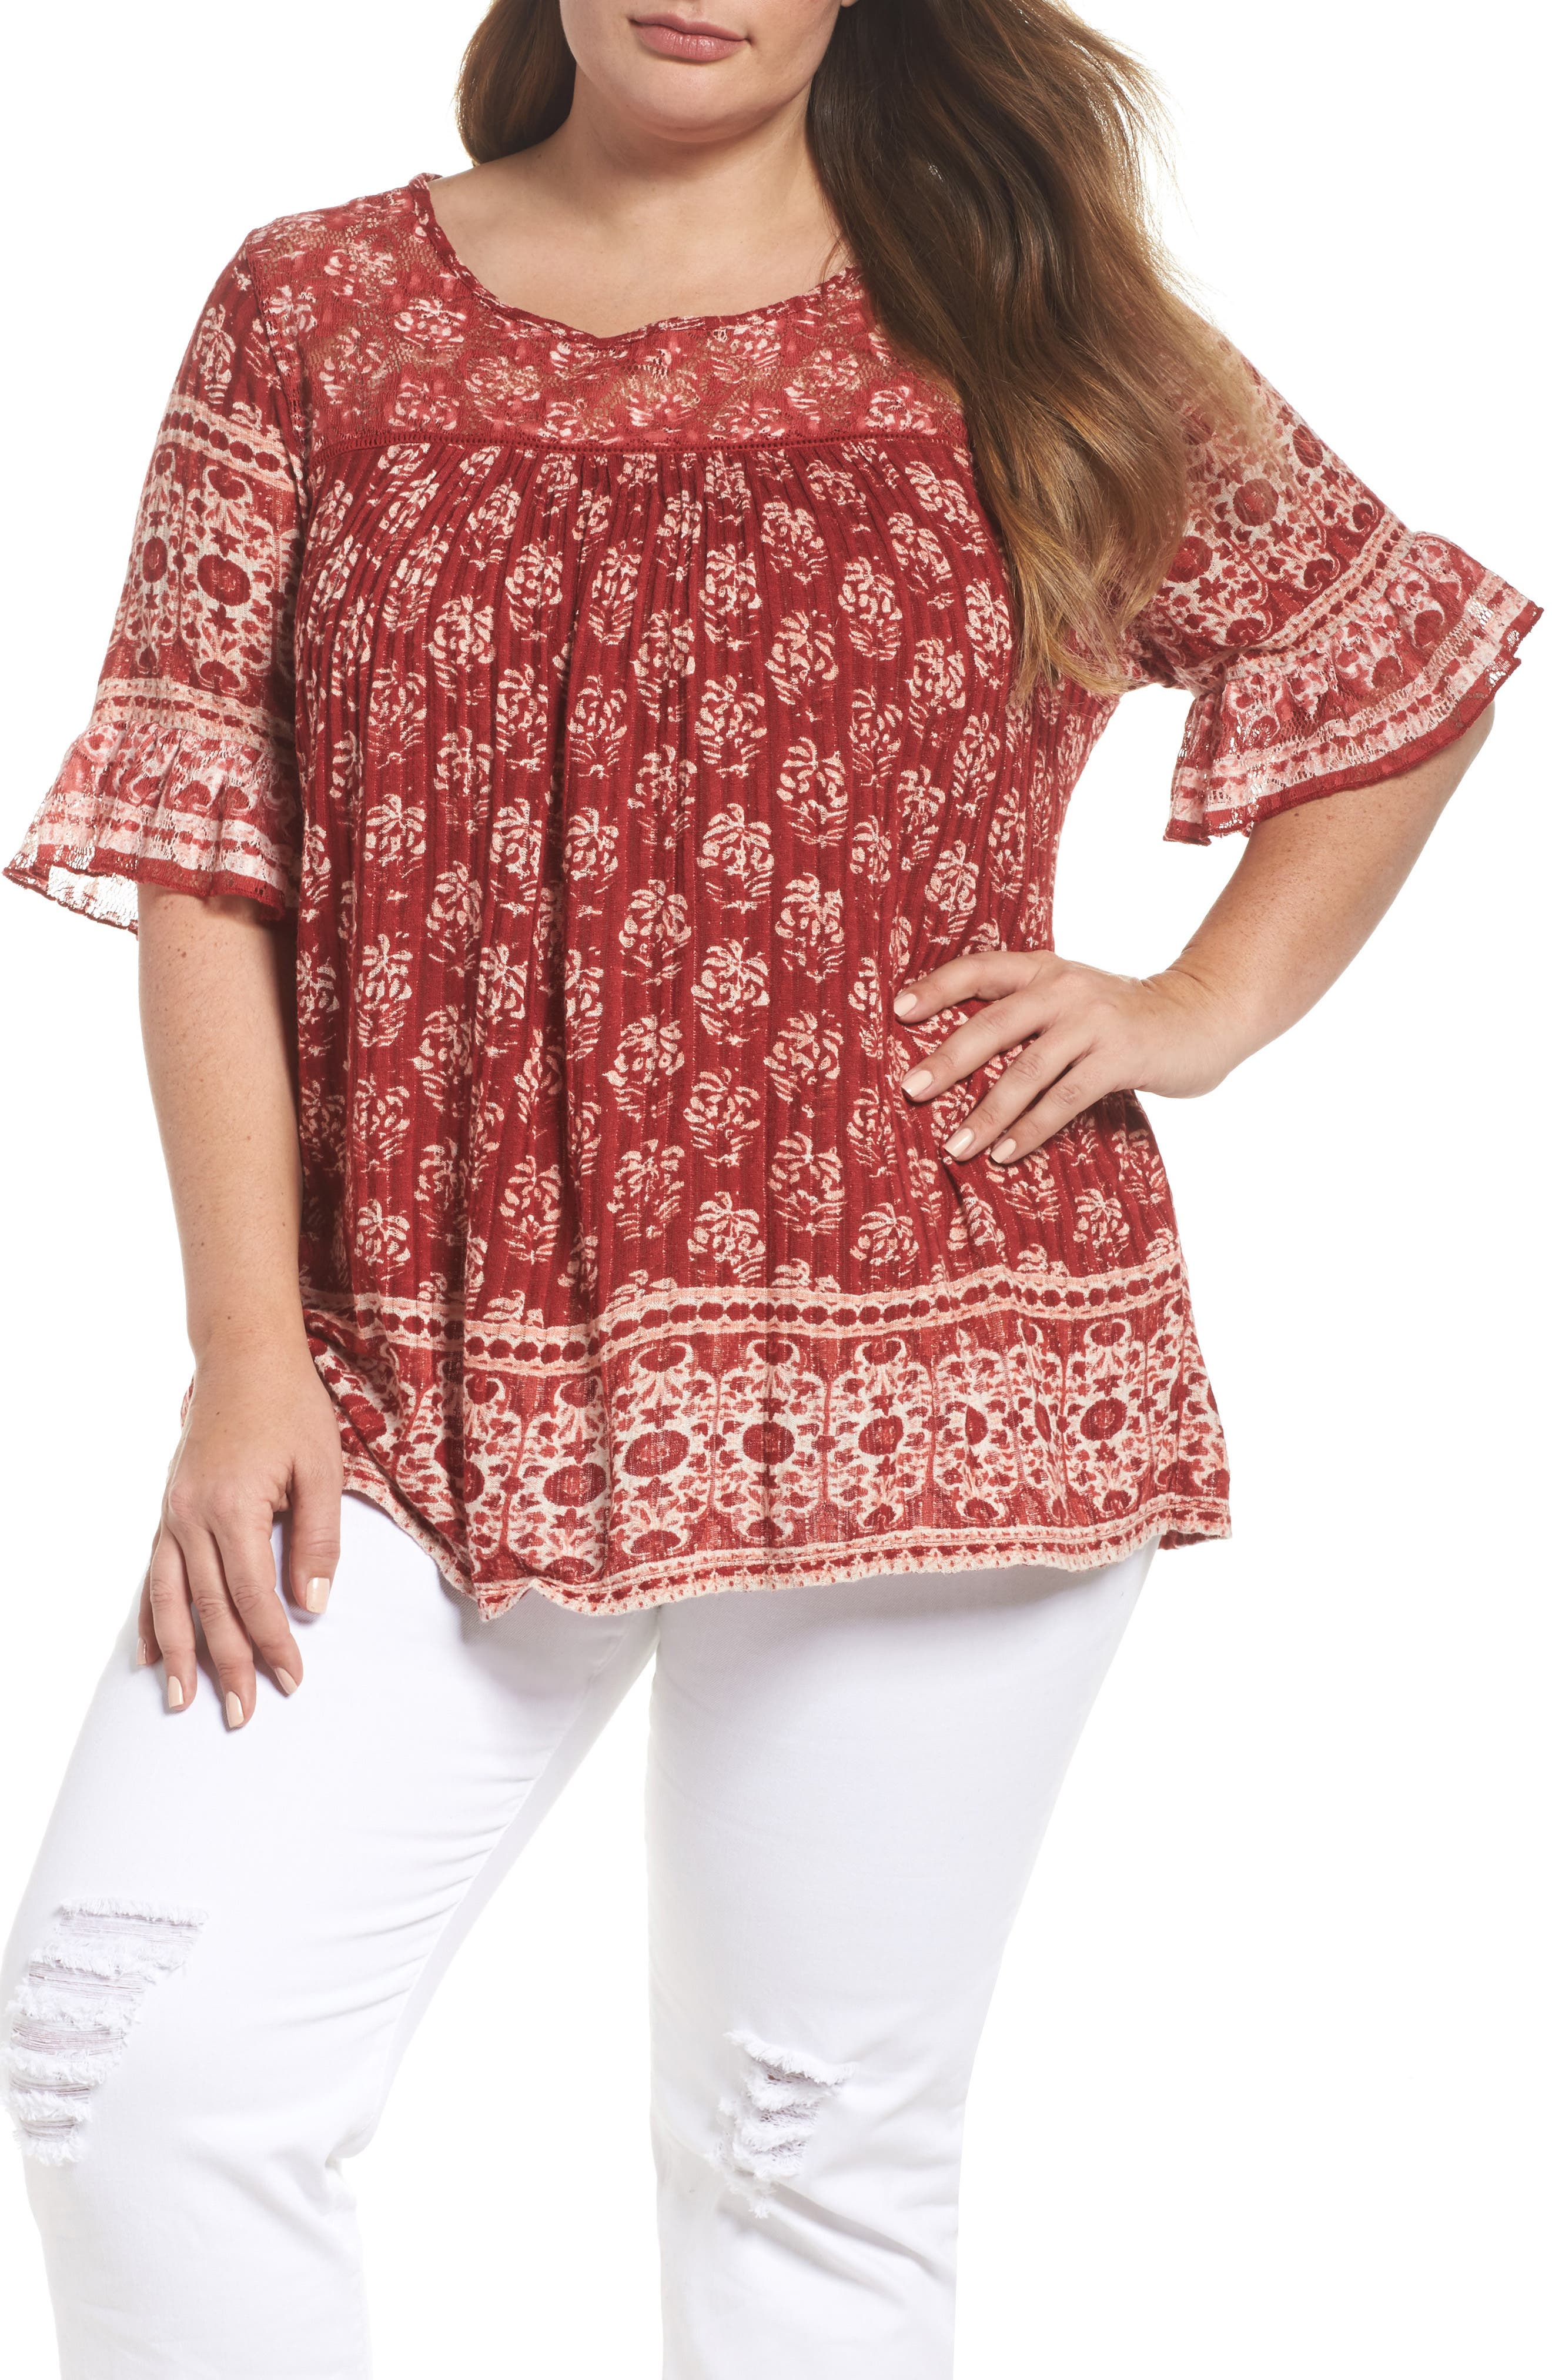 Alternate Image 1 Selected - Lucky Brand Print Top (Plus Size)